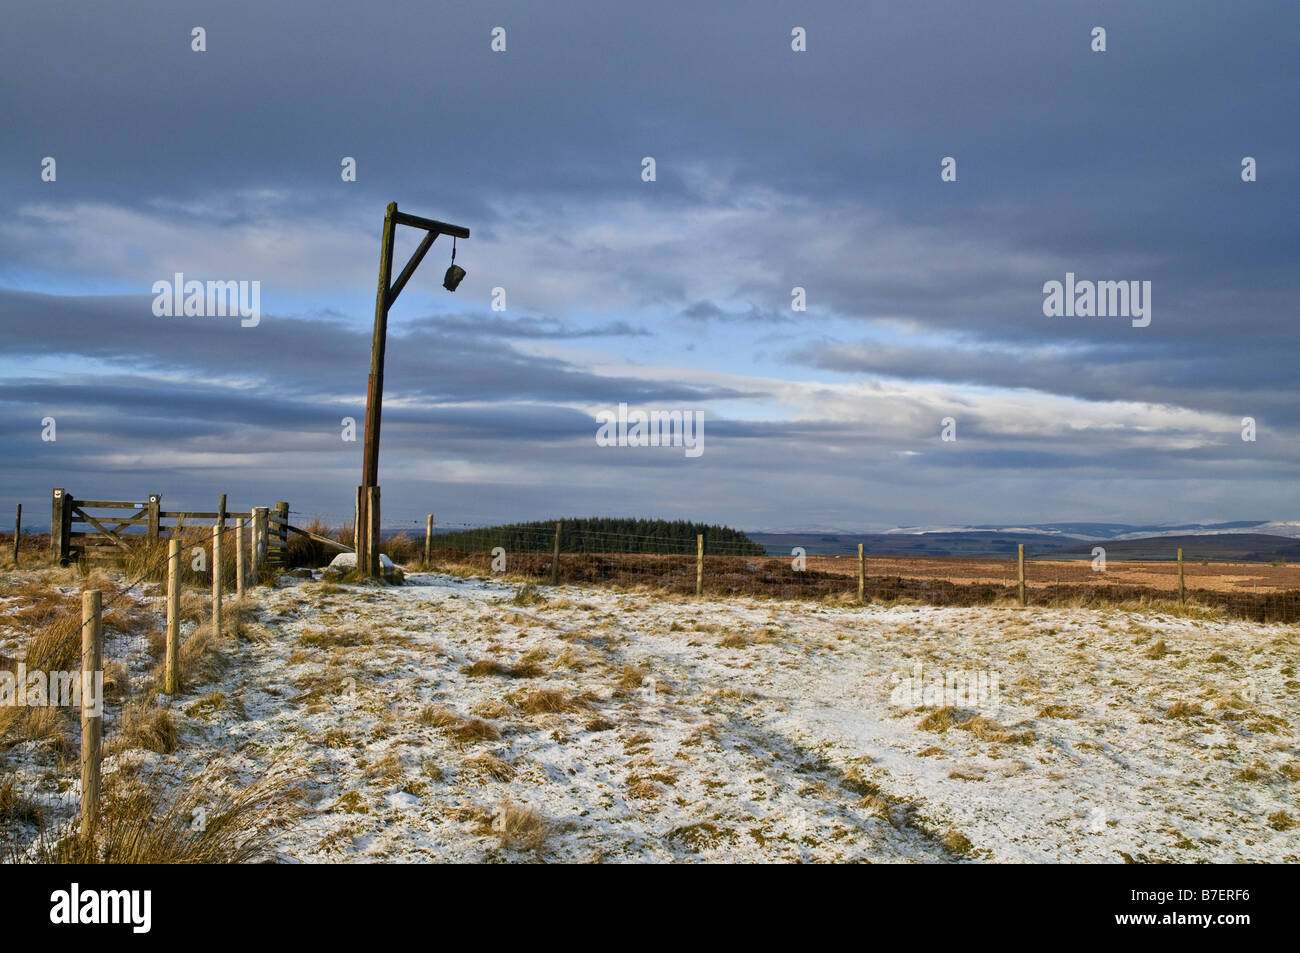 dh Steng Cross TYNEDALE NORTHUMBRIA Winters Gibbet monument lonely moorland gallows - Stock Image